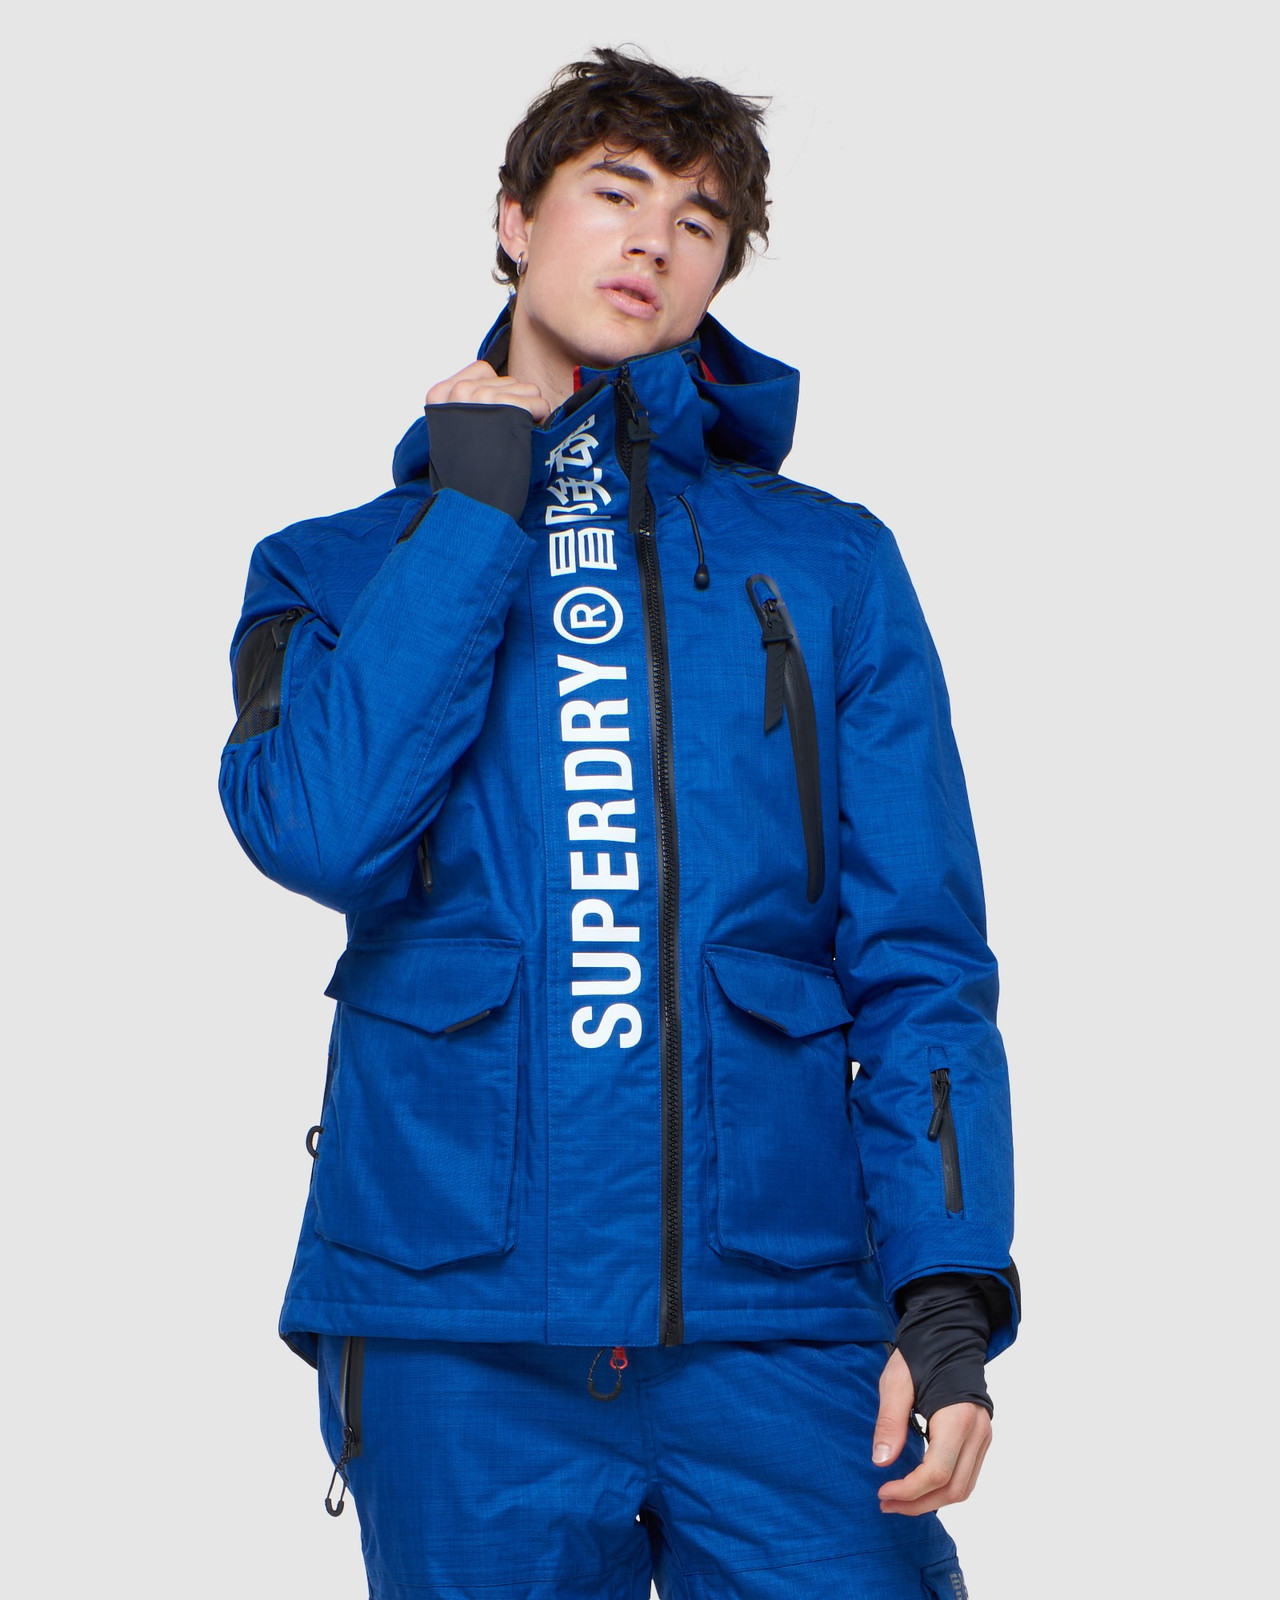 Superdry Mens ULTIMATE MOUNTAIN RESCUE JKT Blue Green Snow Jackets 0